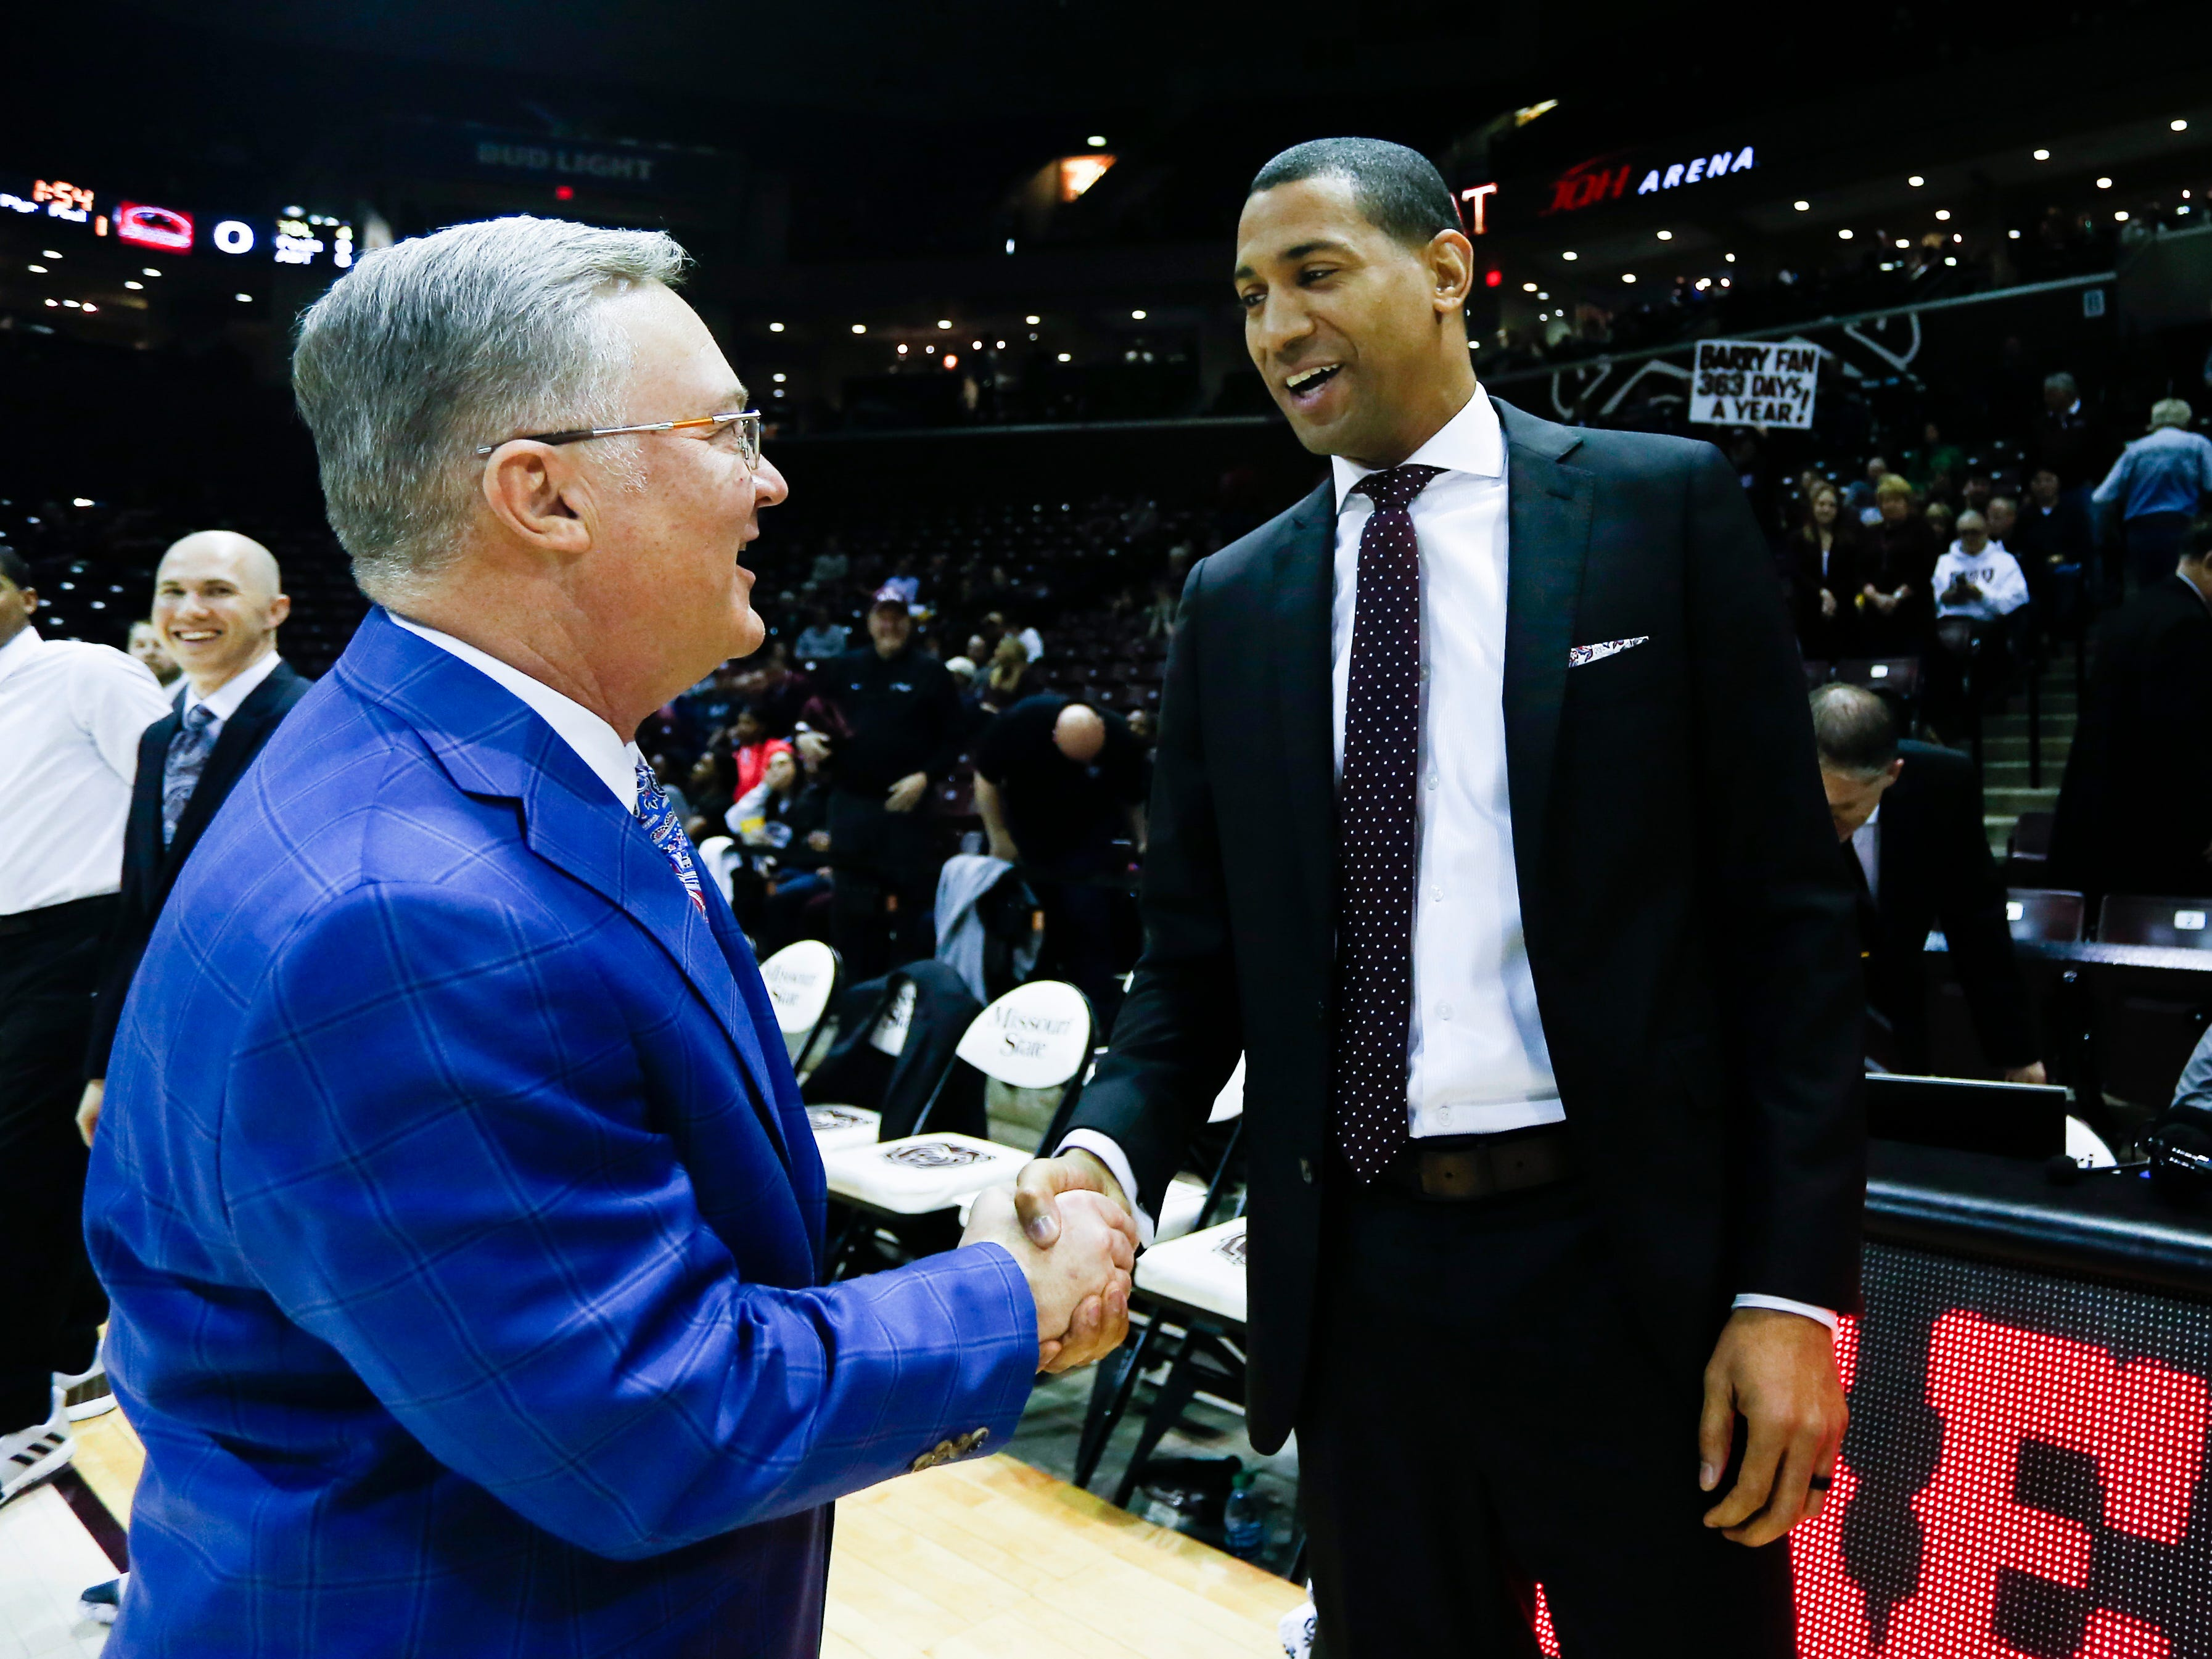 Missouri State Bears coach Dana Ford and Southern Illinois Salukis coach Barry Hinson shake hands before the two teams meet at JQH Arena on Wednesday, Feb. 6, 2019.